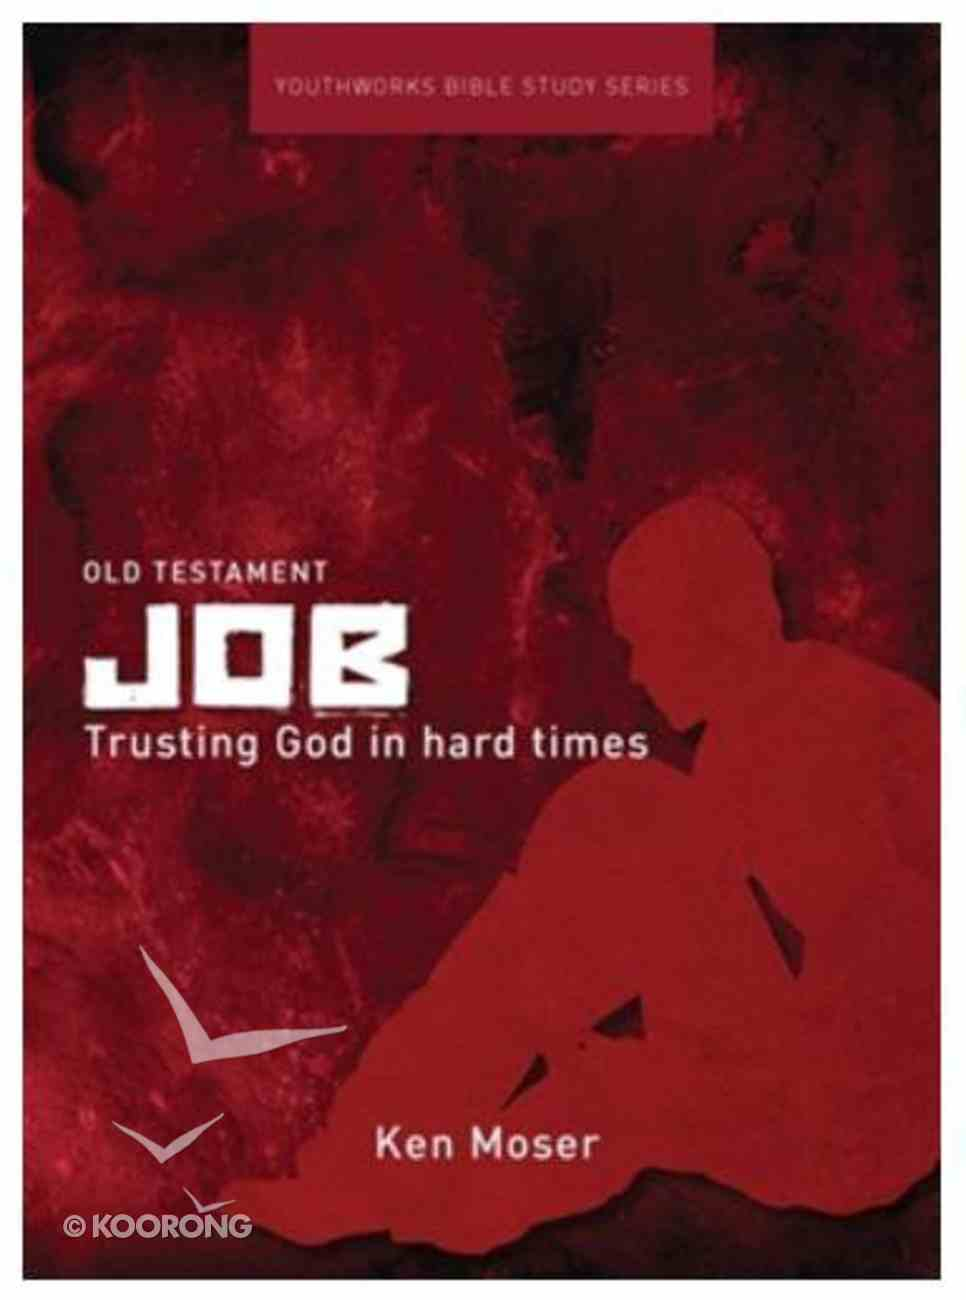 Job, Trusting God in Hard Times (Youthworks Bible Study Series) Paperback